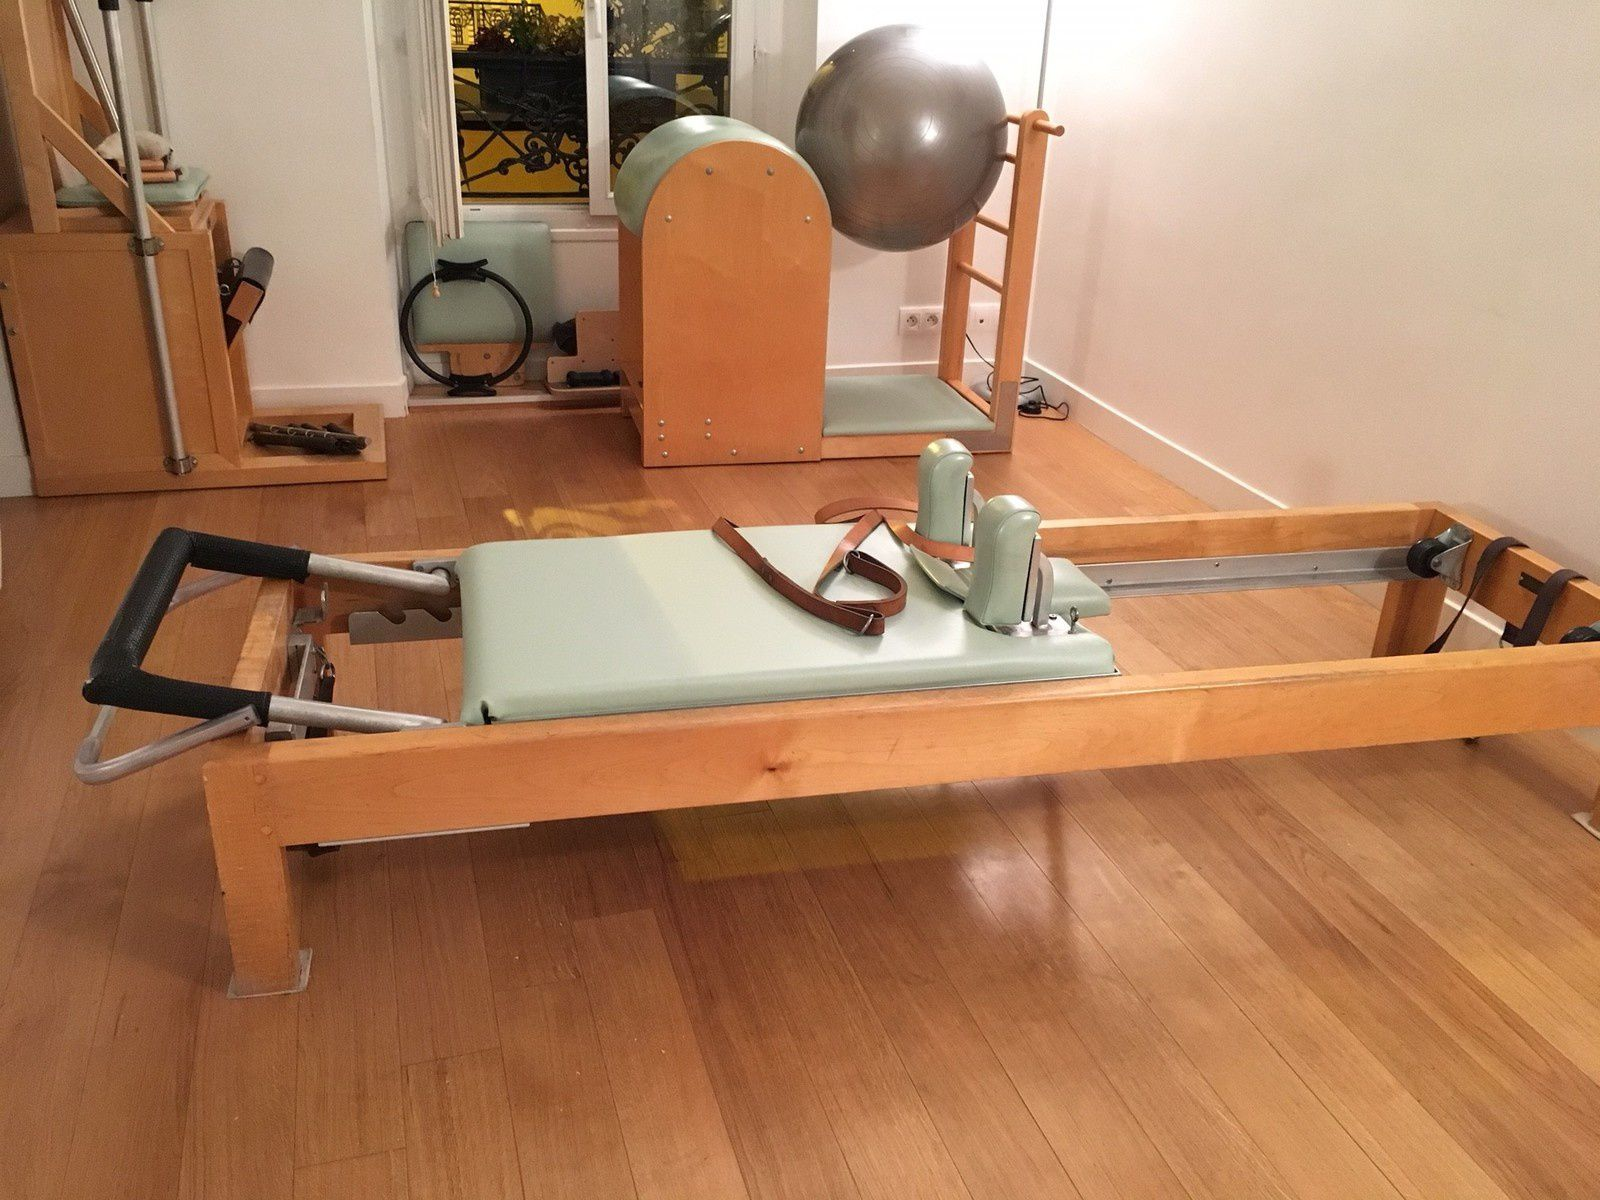 Reformer, La machine Pilates.